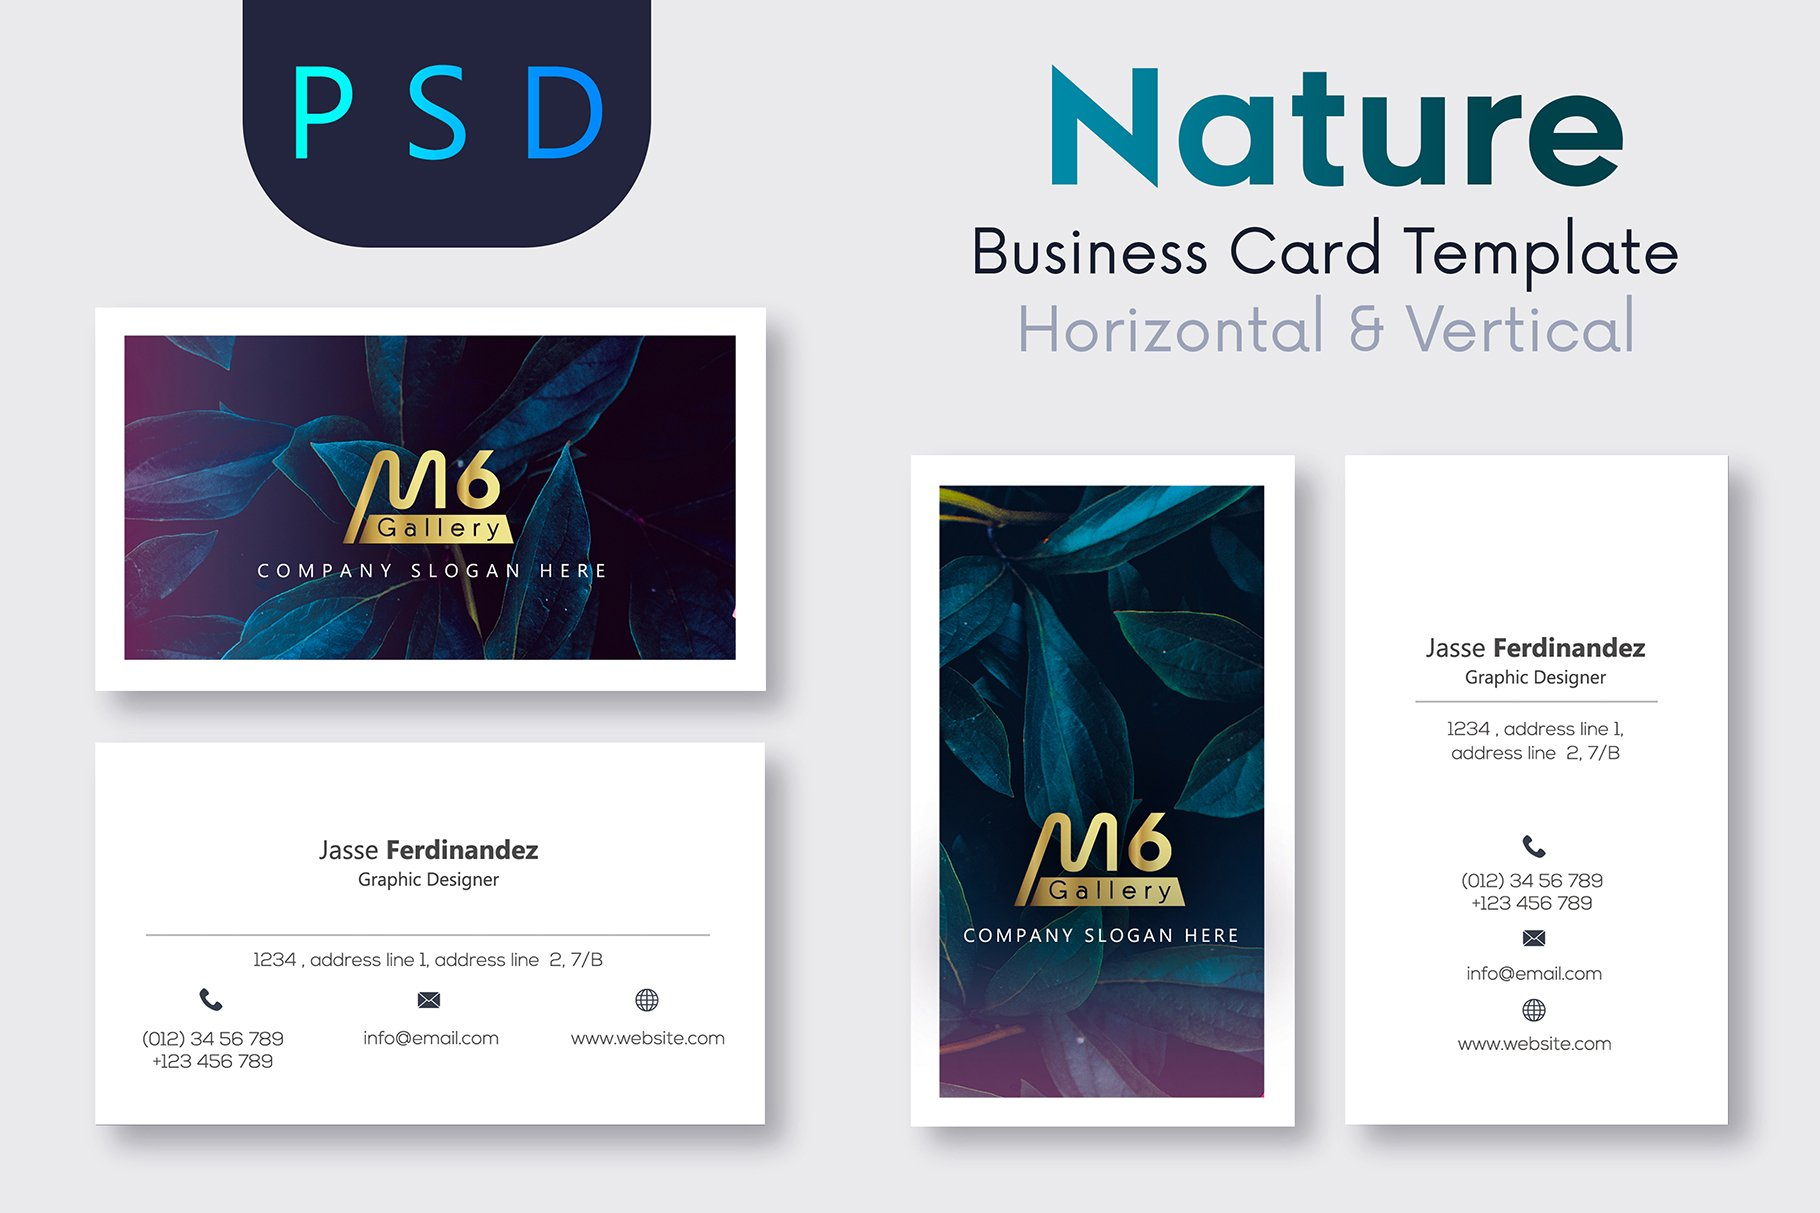 Nature business card template s42 business card templates nature business card template s42 business card templates creative market reheart Images